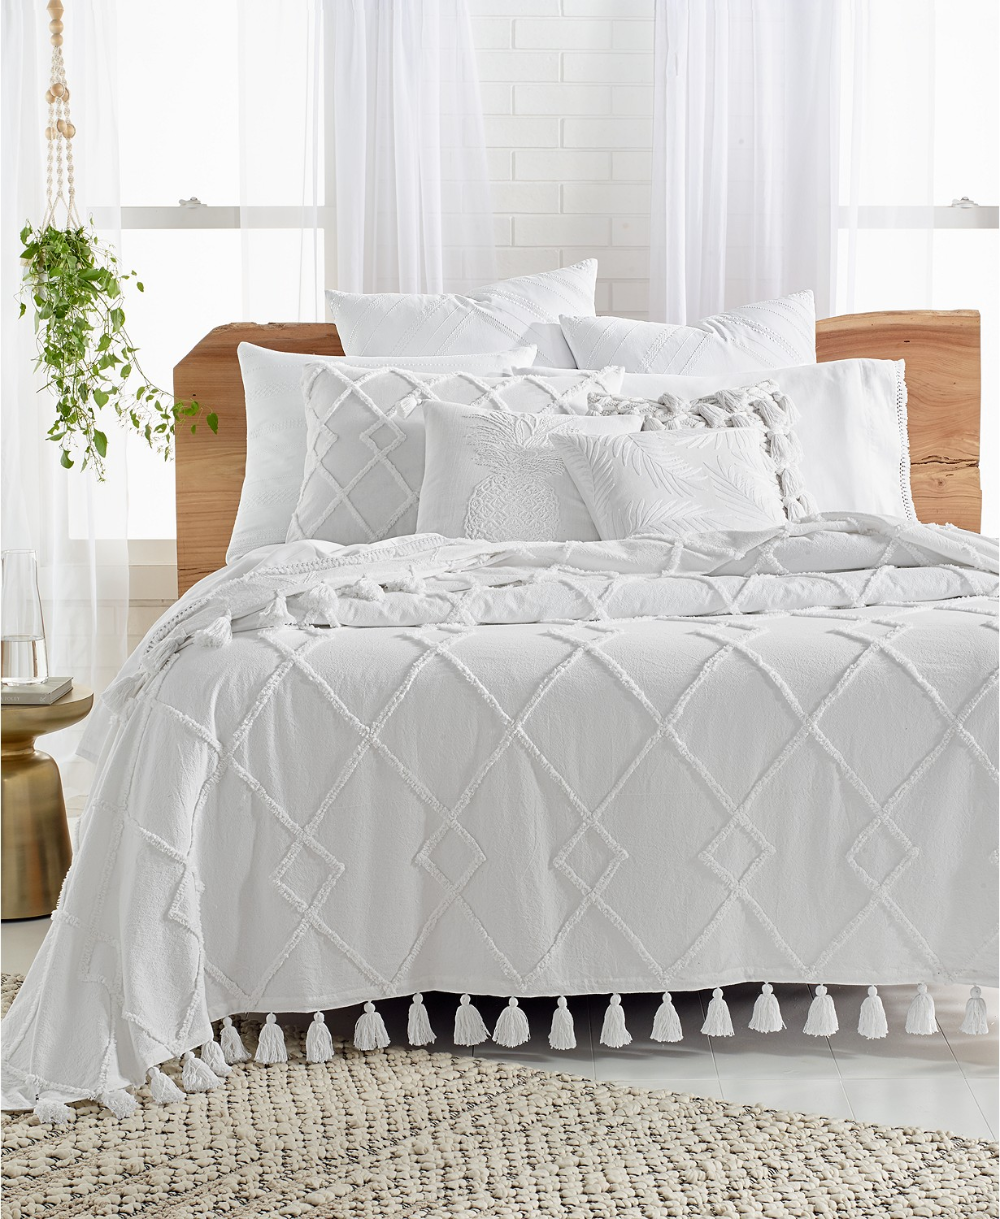 Lucky Brand Diamond Tuft Queen Bed Cover, Created for Macy